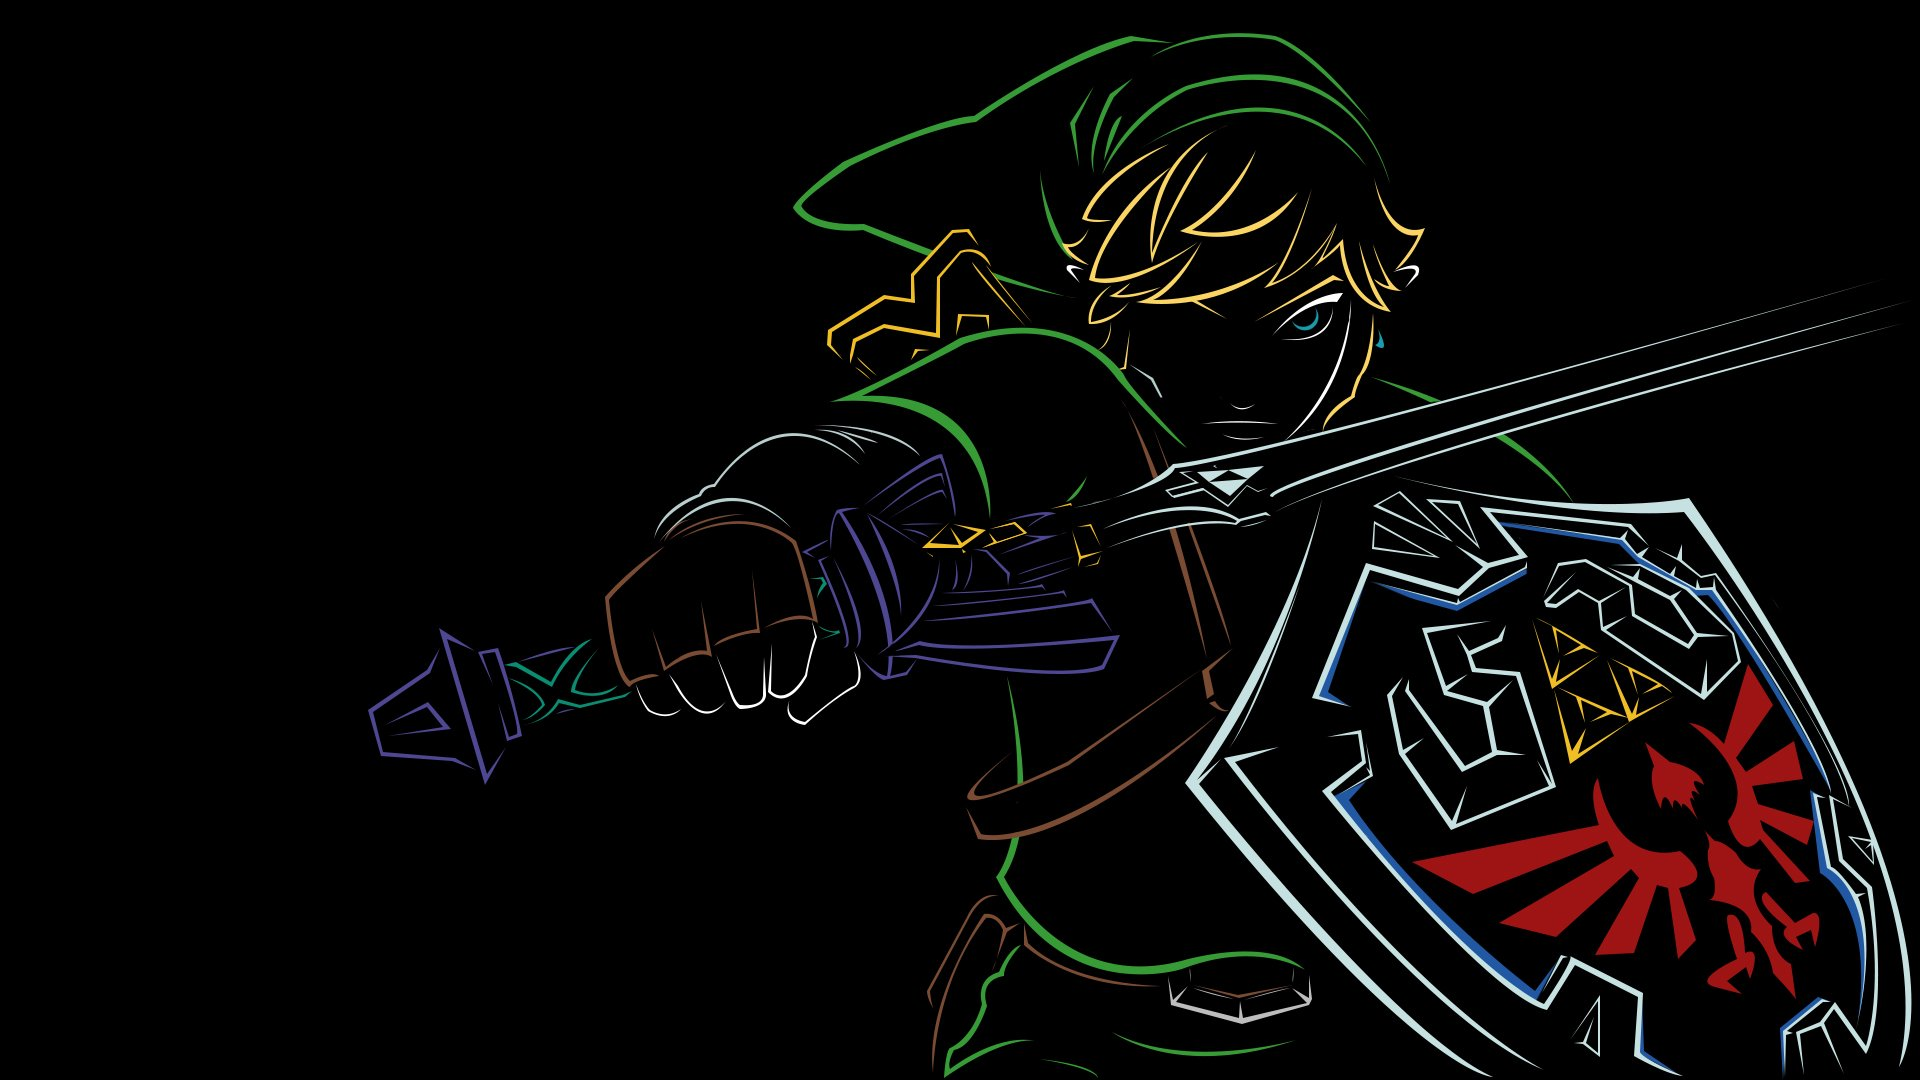 linklegend of zeldagameswallpapersartbeautiful pictures 1920x1080